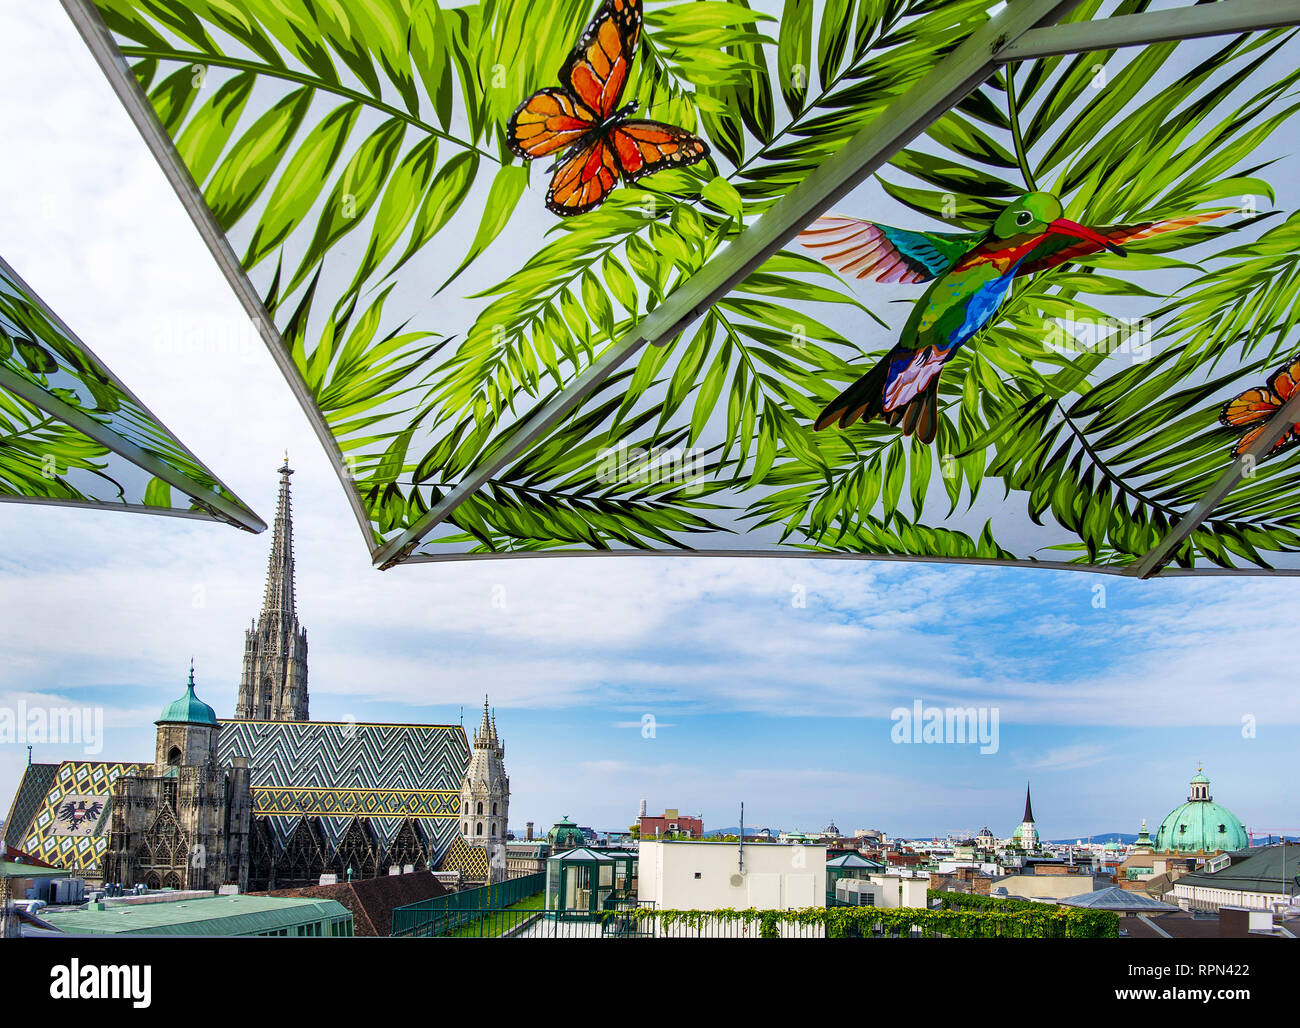 View of Stephansdom, Vienna's cathedral, from the rooftop bar of the Lamée hotel - Stock Image